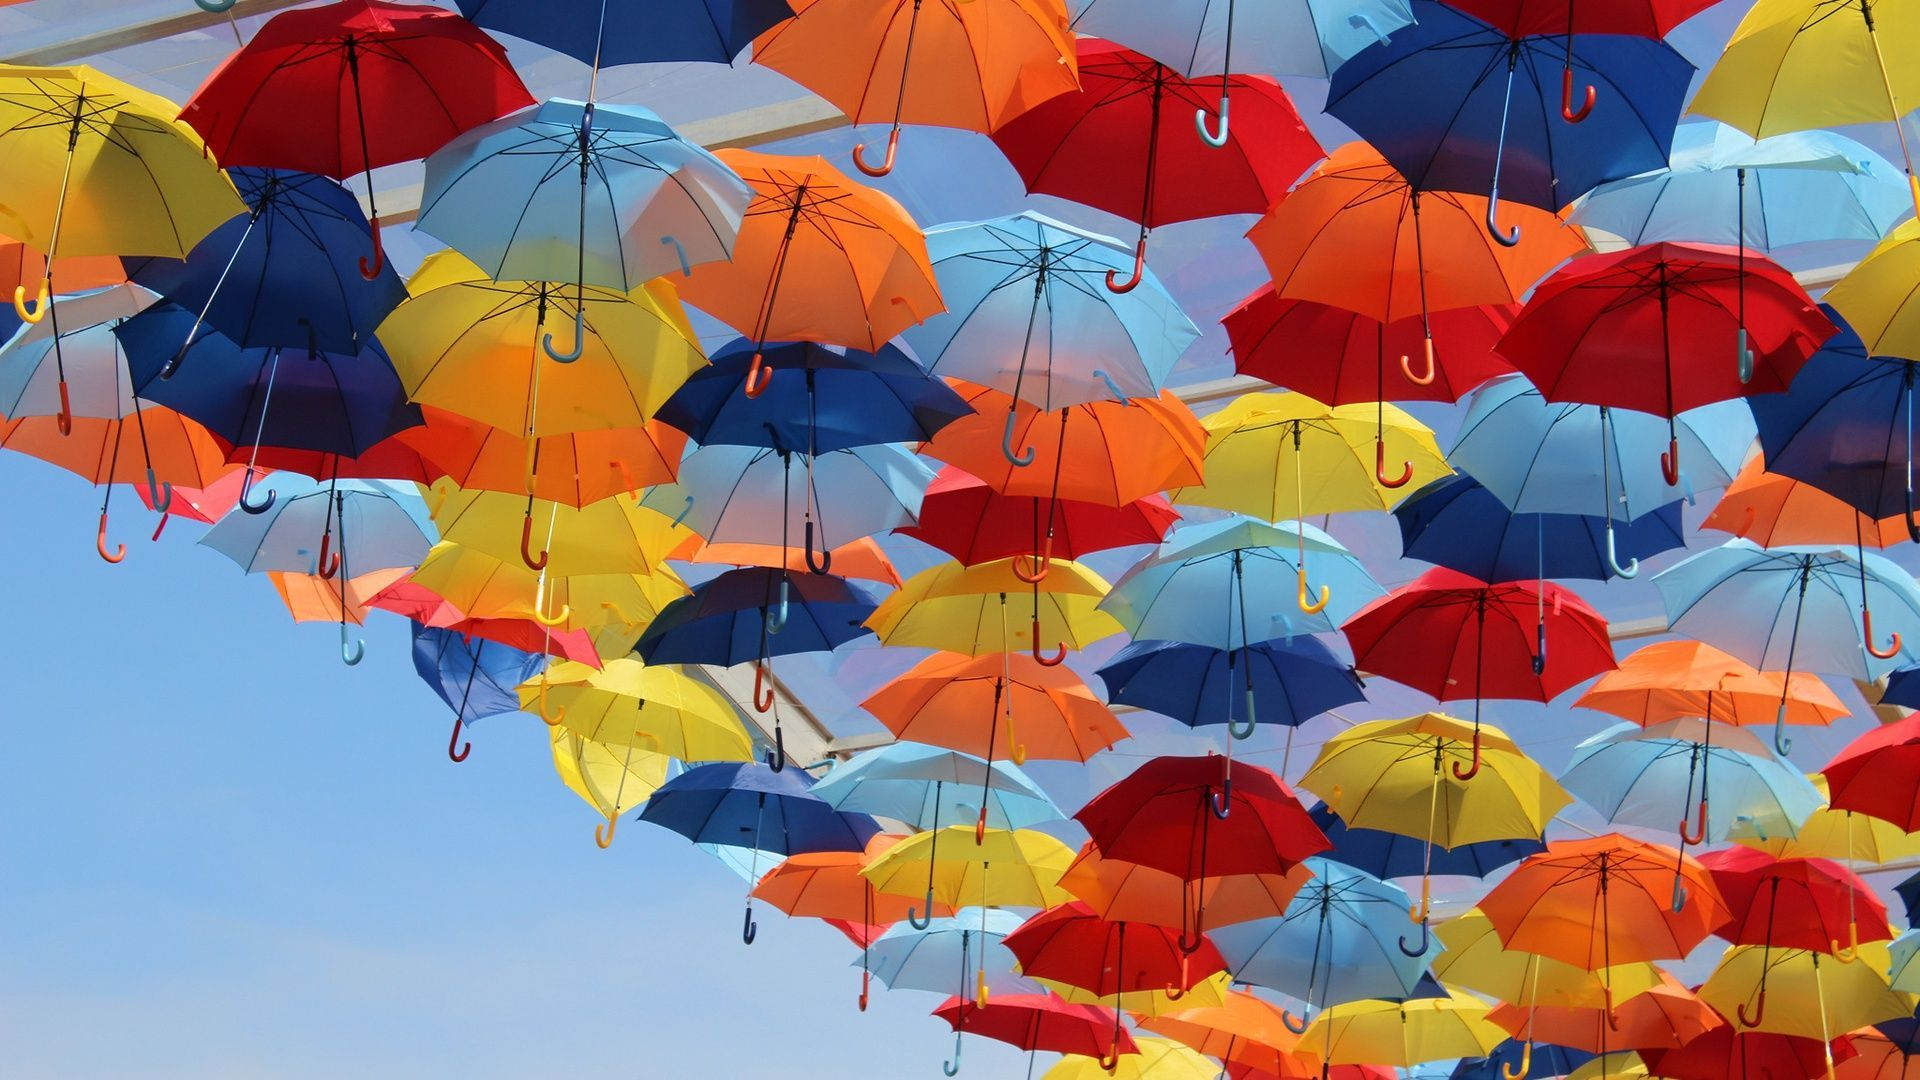 Umbrellas Collection See All Wallpapers Wallpapers Background Other Umbrella Wallpaper Background